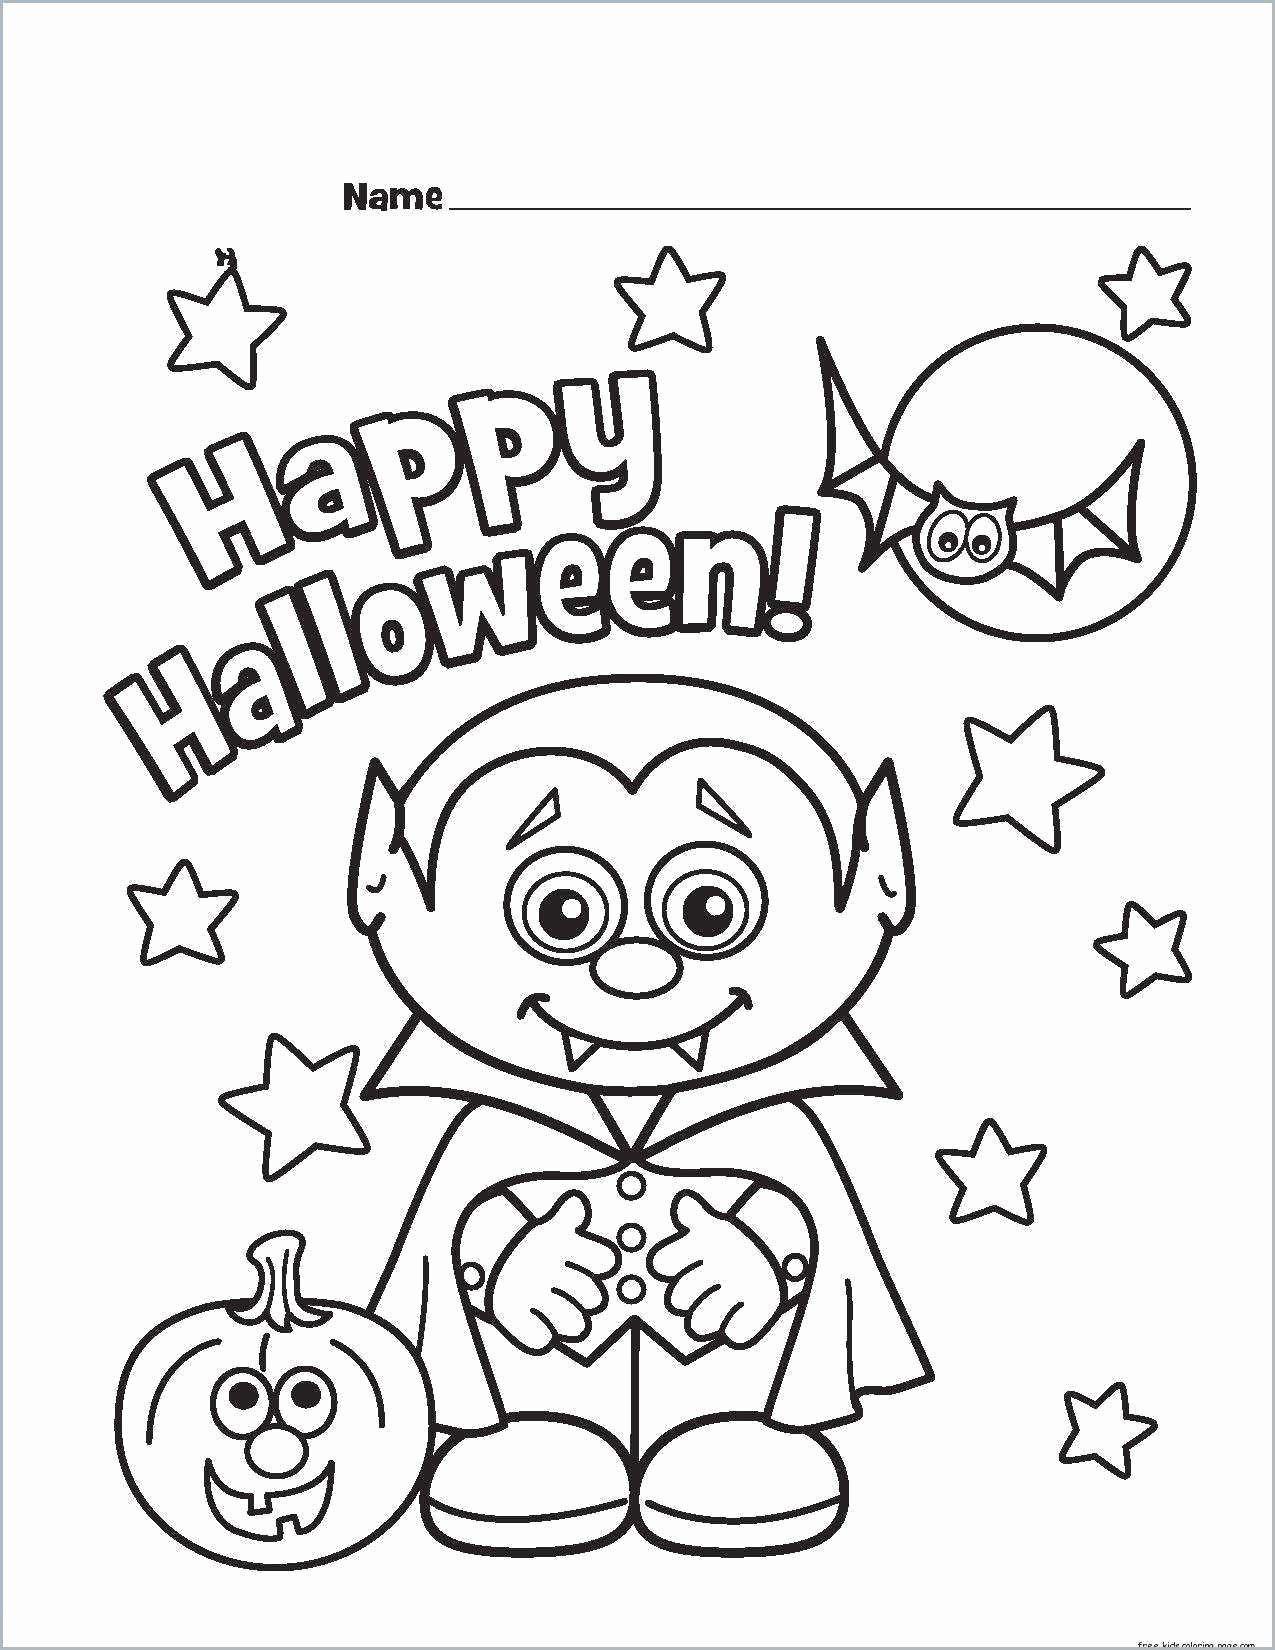 Coloring Book Halloween Costume Beautiful Halloween Characters Coloring Pages Halloween Coloring Pages Halloween Coloring Pages Printable Minion Coloring Pages